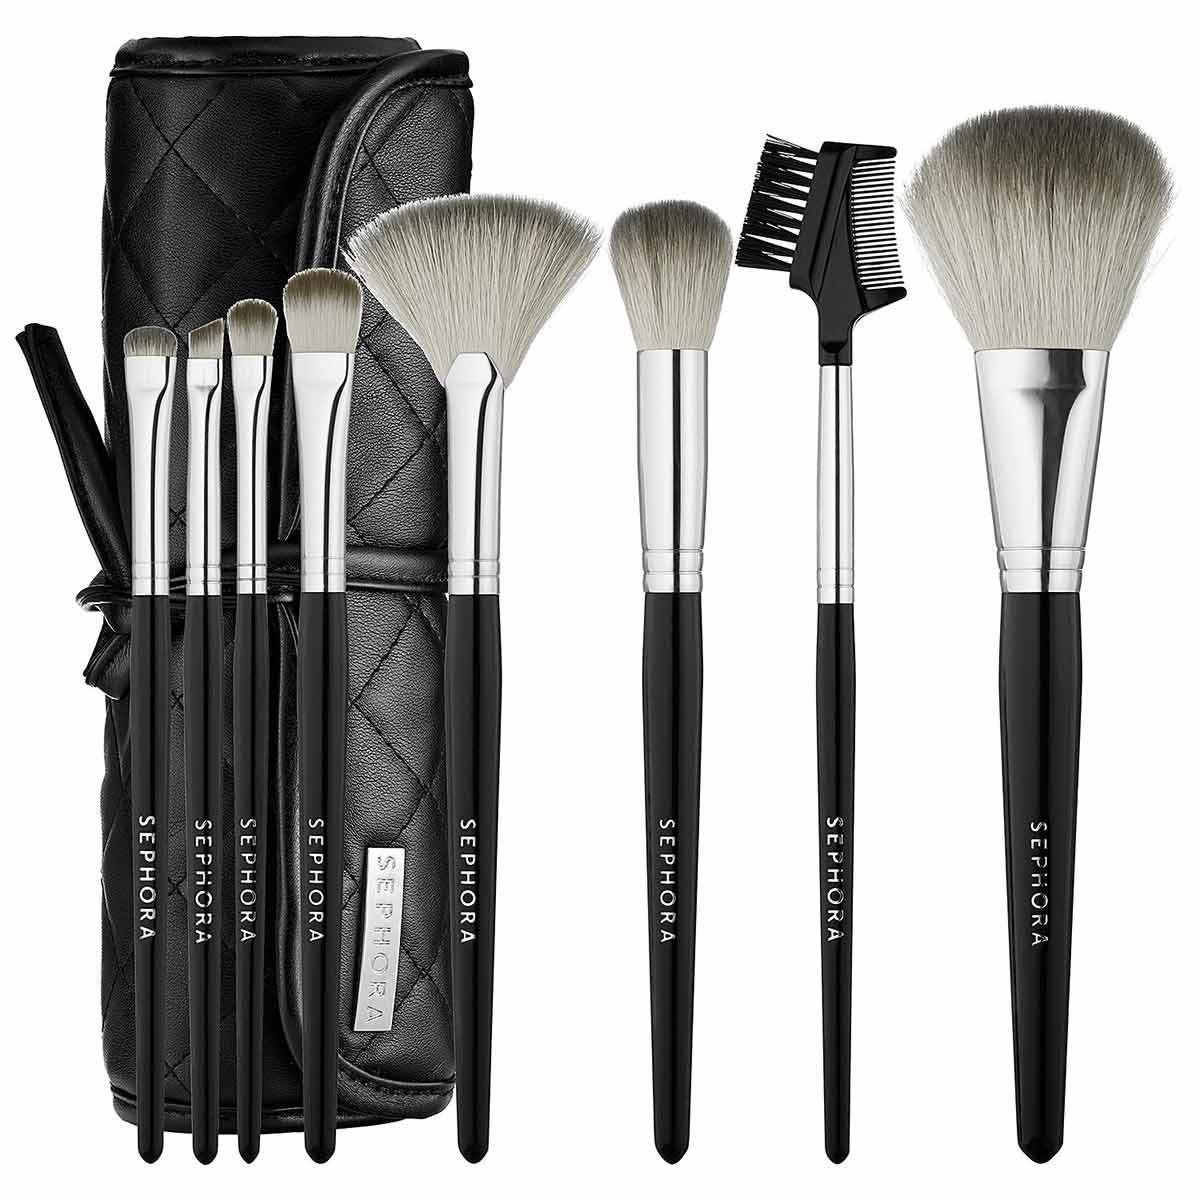 Sephora's Ready to Roll Brush Set in black and white including 10 different makeup brushes photo